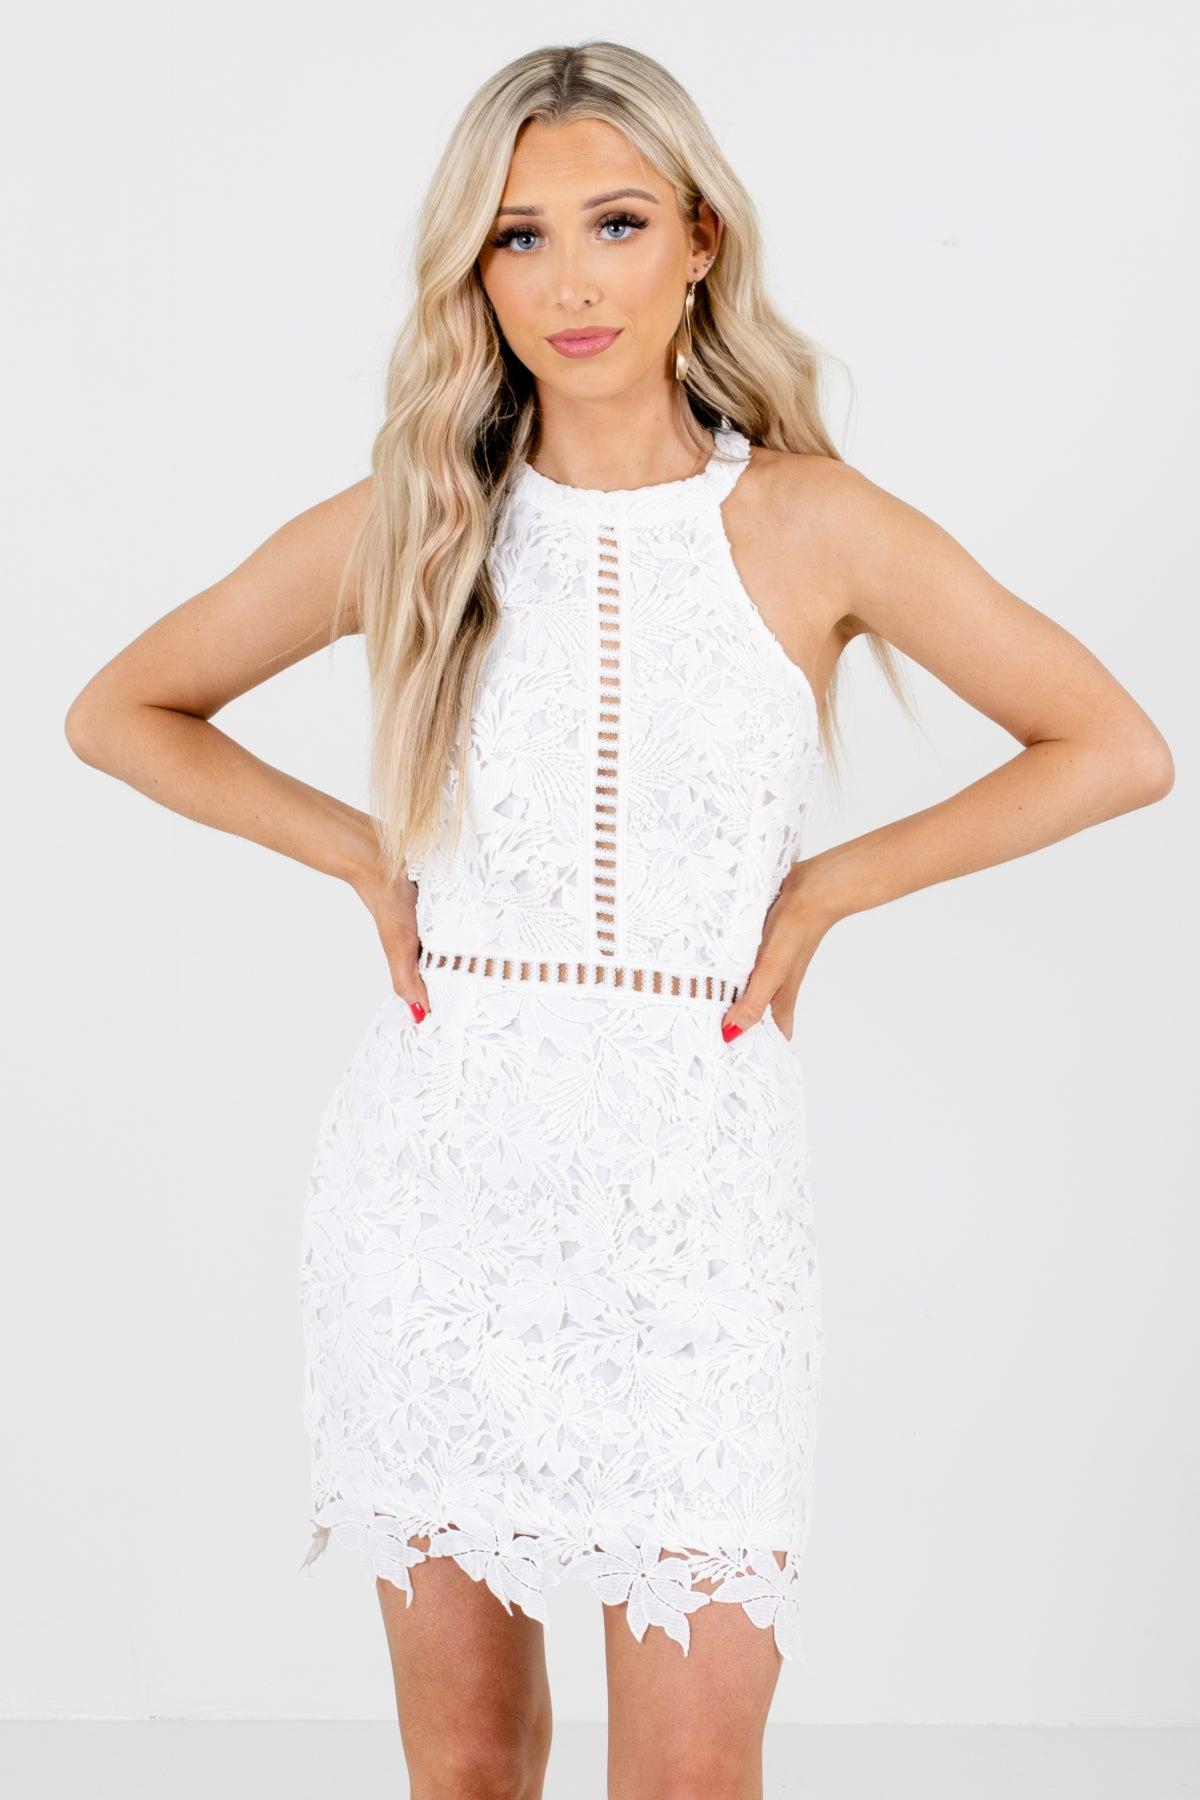 White Crochet Lace Material Boutique Mini Dresses for Women